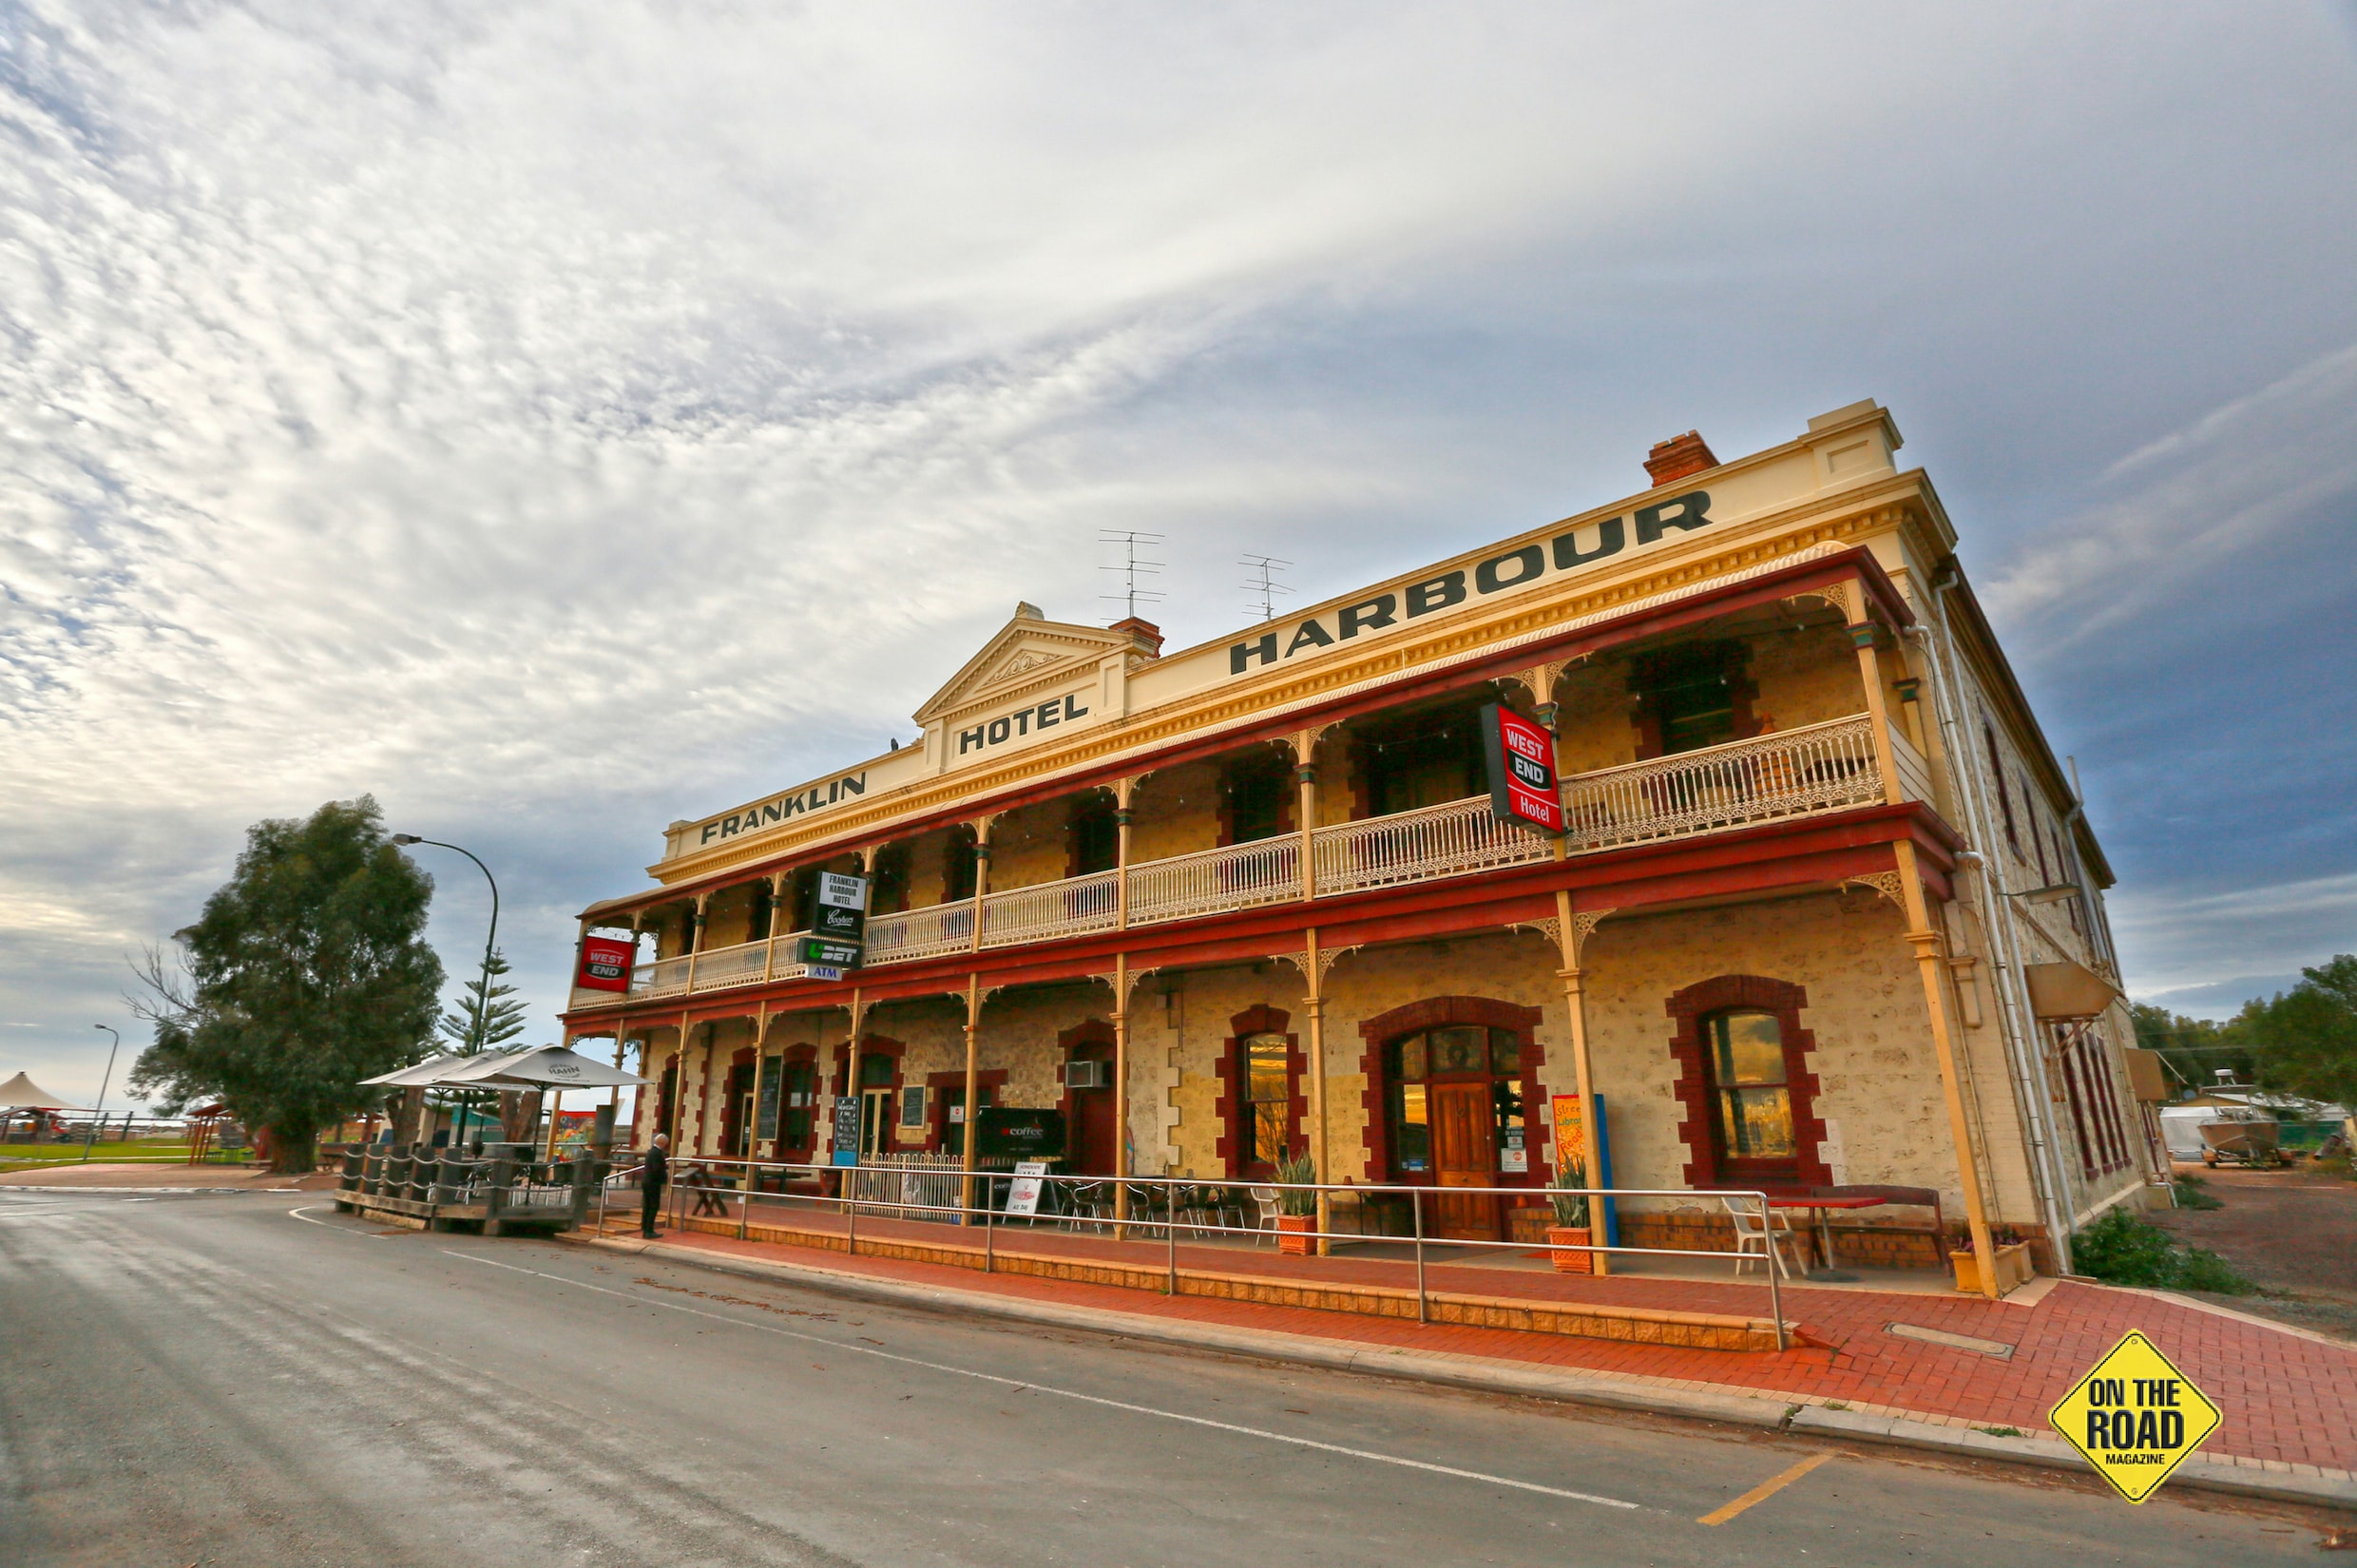 The historic Franklin Harbour Hotel at Cowell